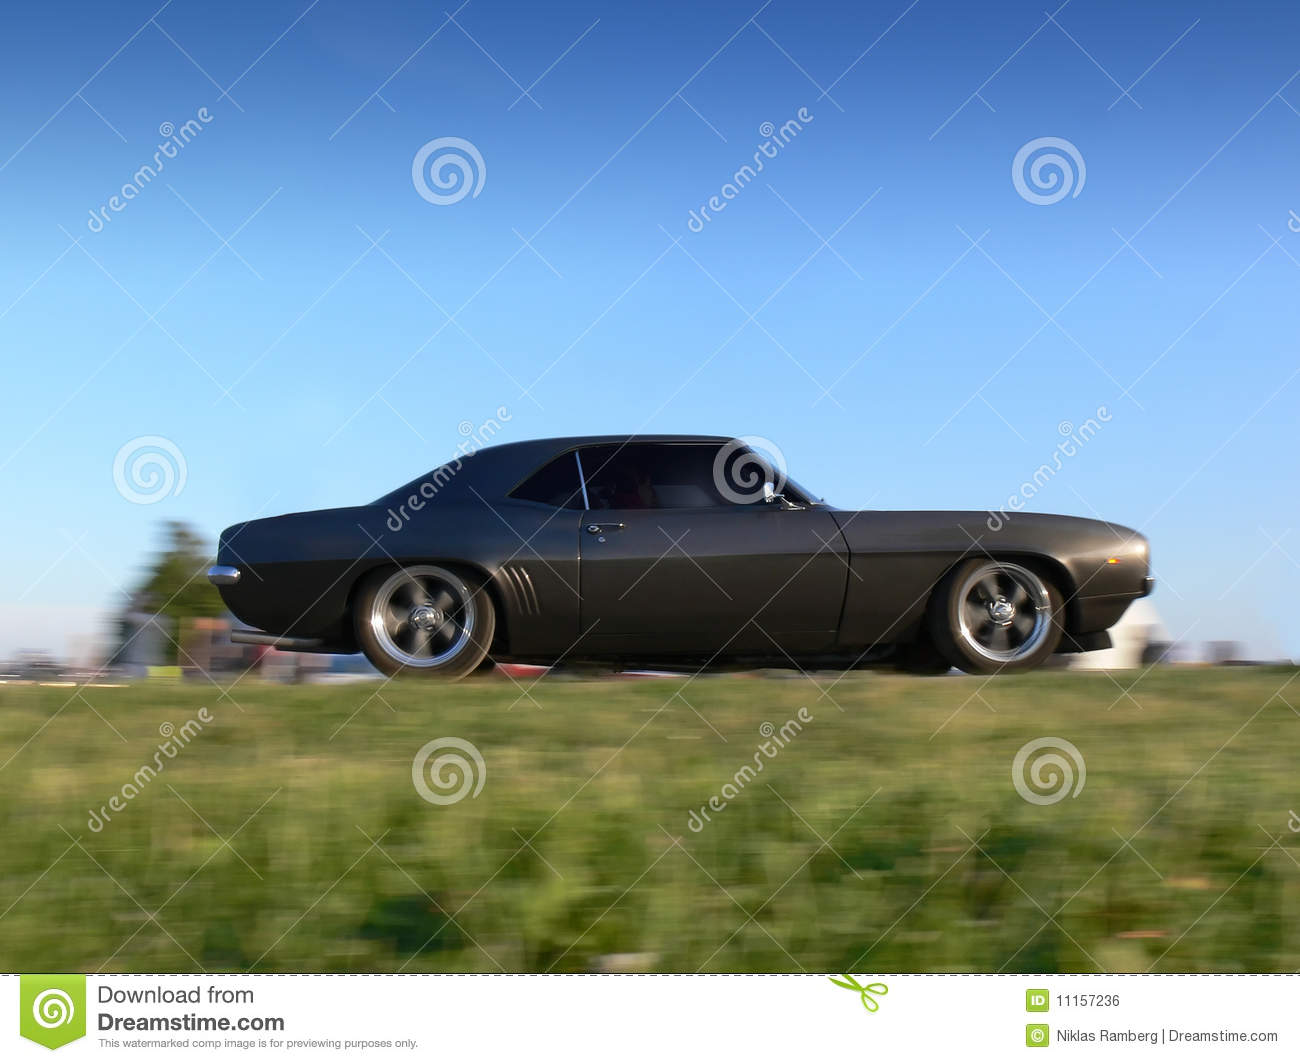 Classic American Muscle Car On The Move Stock Photo - Image of black ...